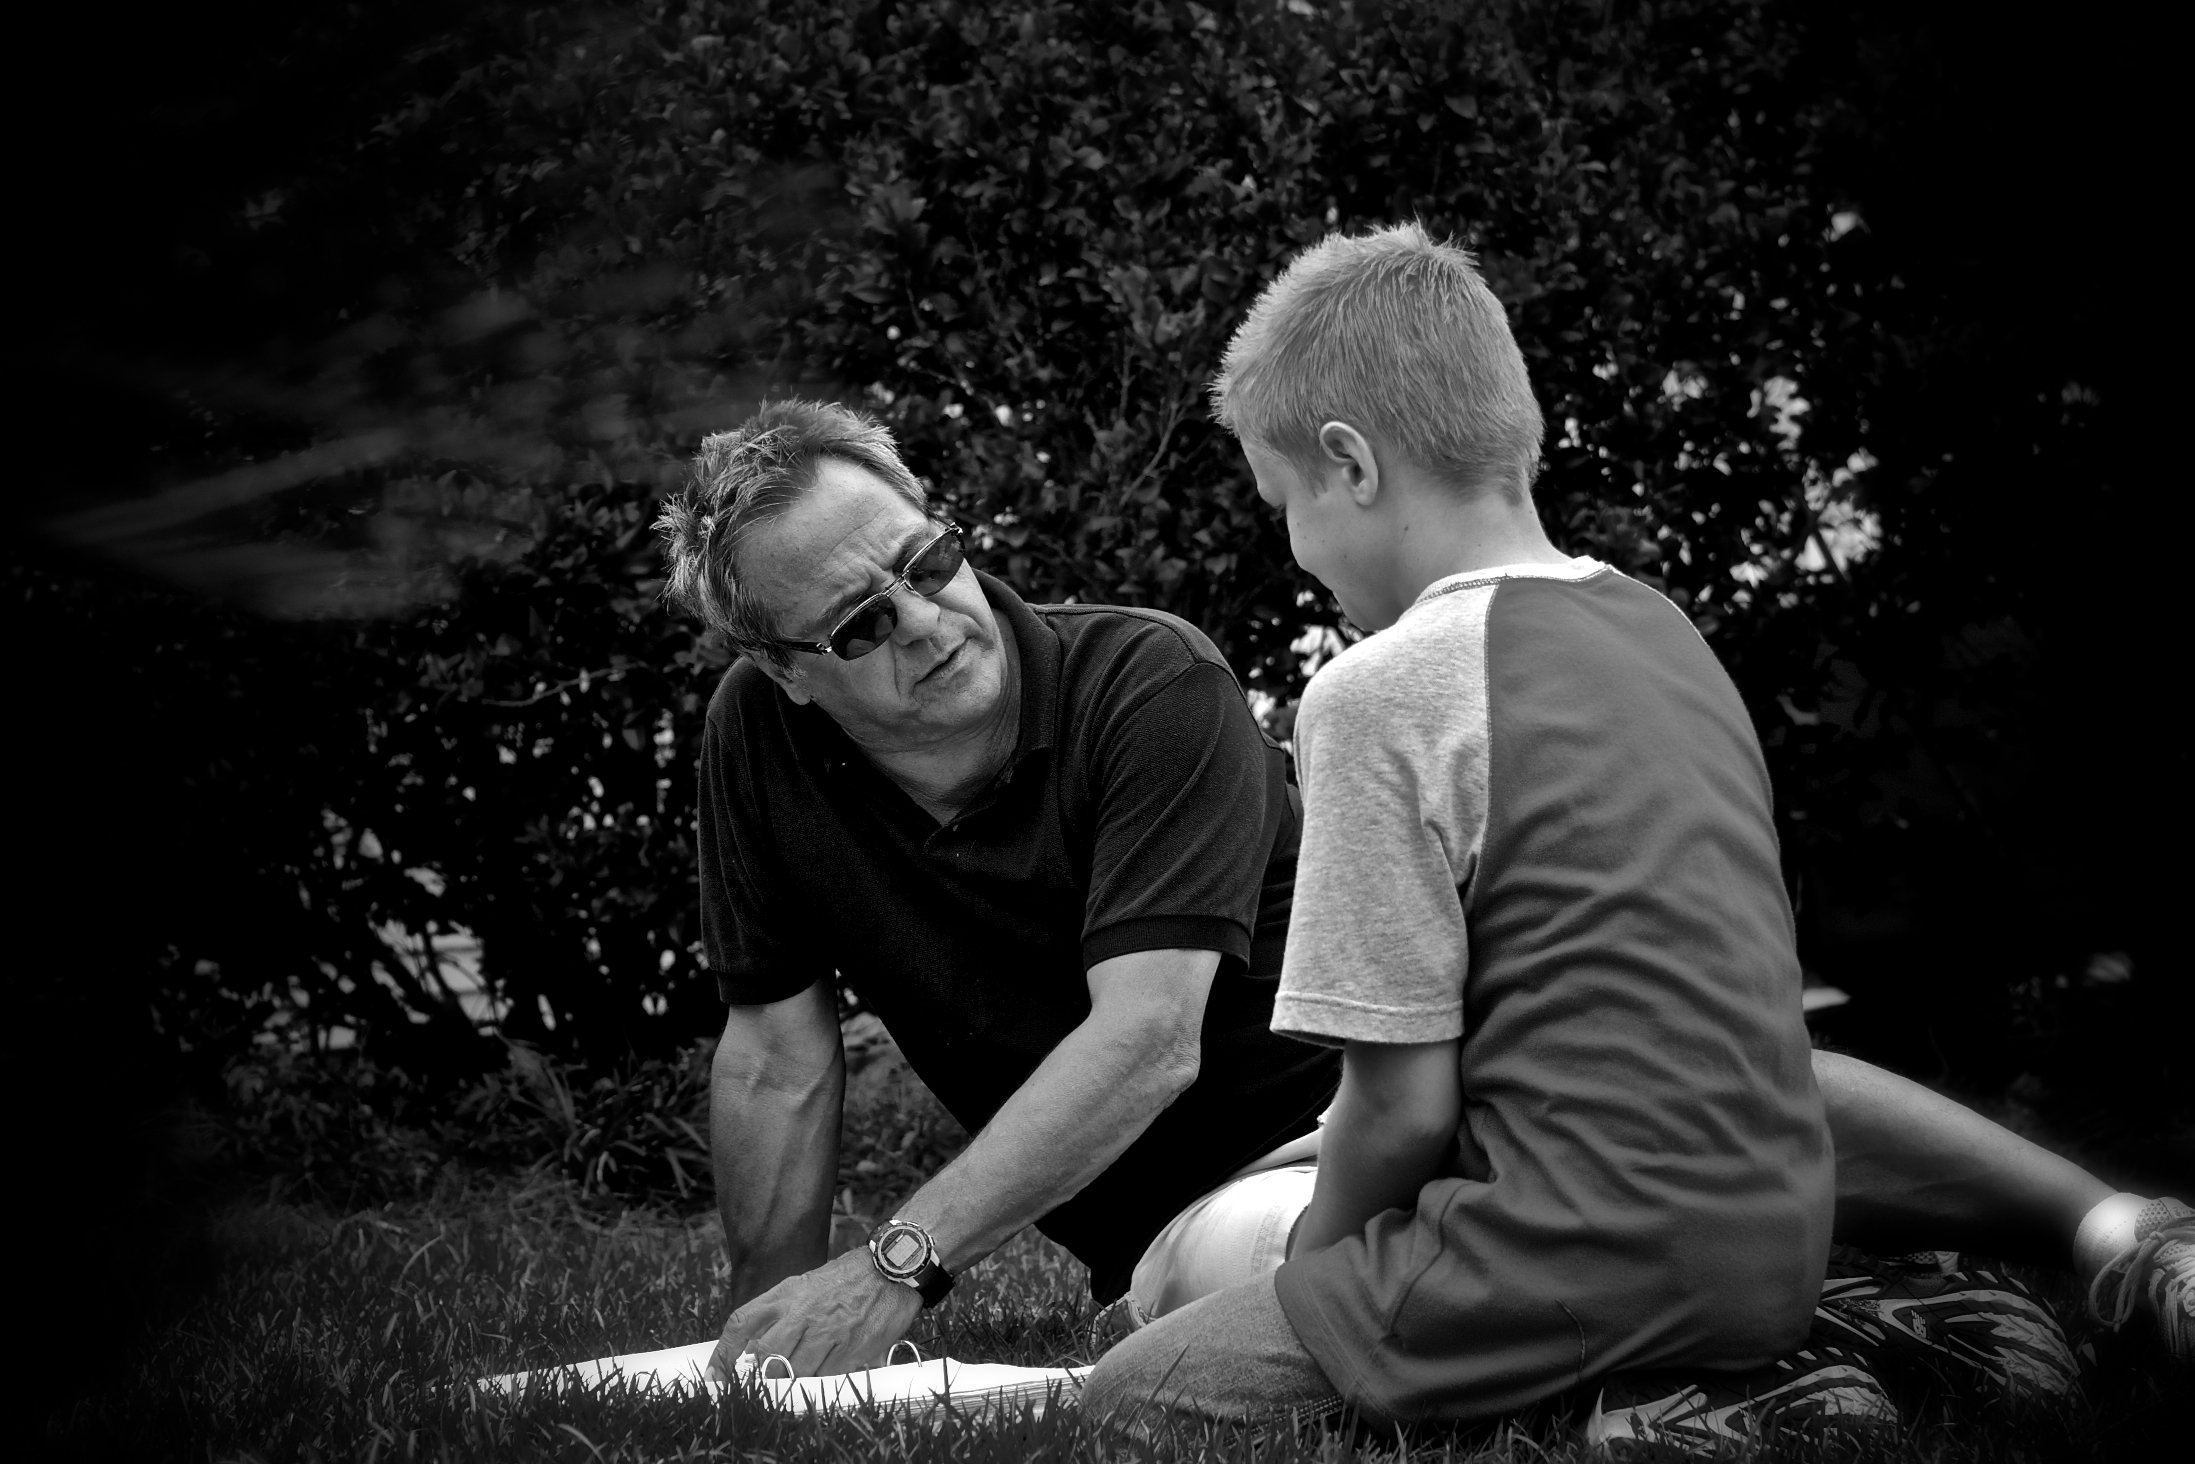 Between scenes, director David Anspaugh confers with Chandler Canterbury, regarding the young actor's lead role as Zach Bonner.